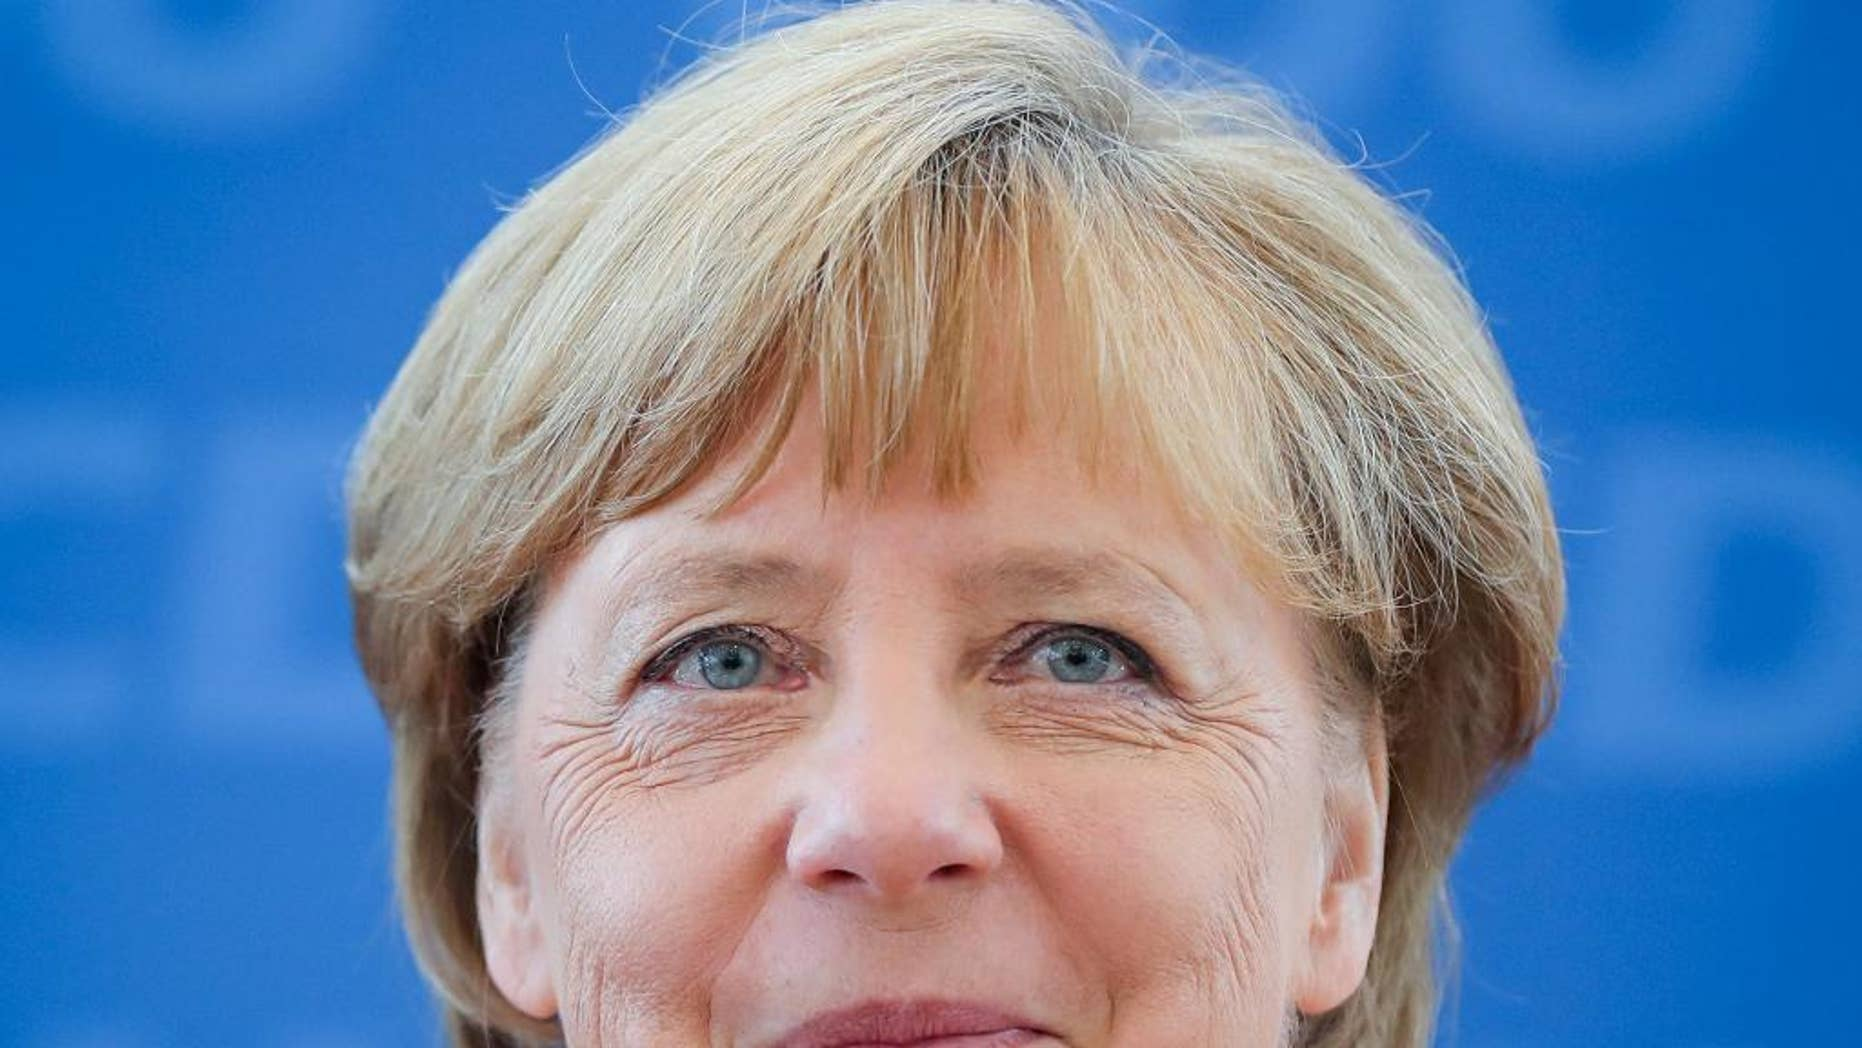 German chancellor Angela Merkel  meets party officials at the headquarters  of her Christian Democrats  in Berlin, Germany,  Monday, Aug. 15, 2016. (Kay Nietfeld/dpa via AP)